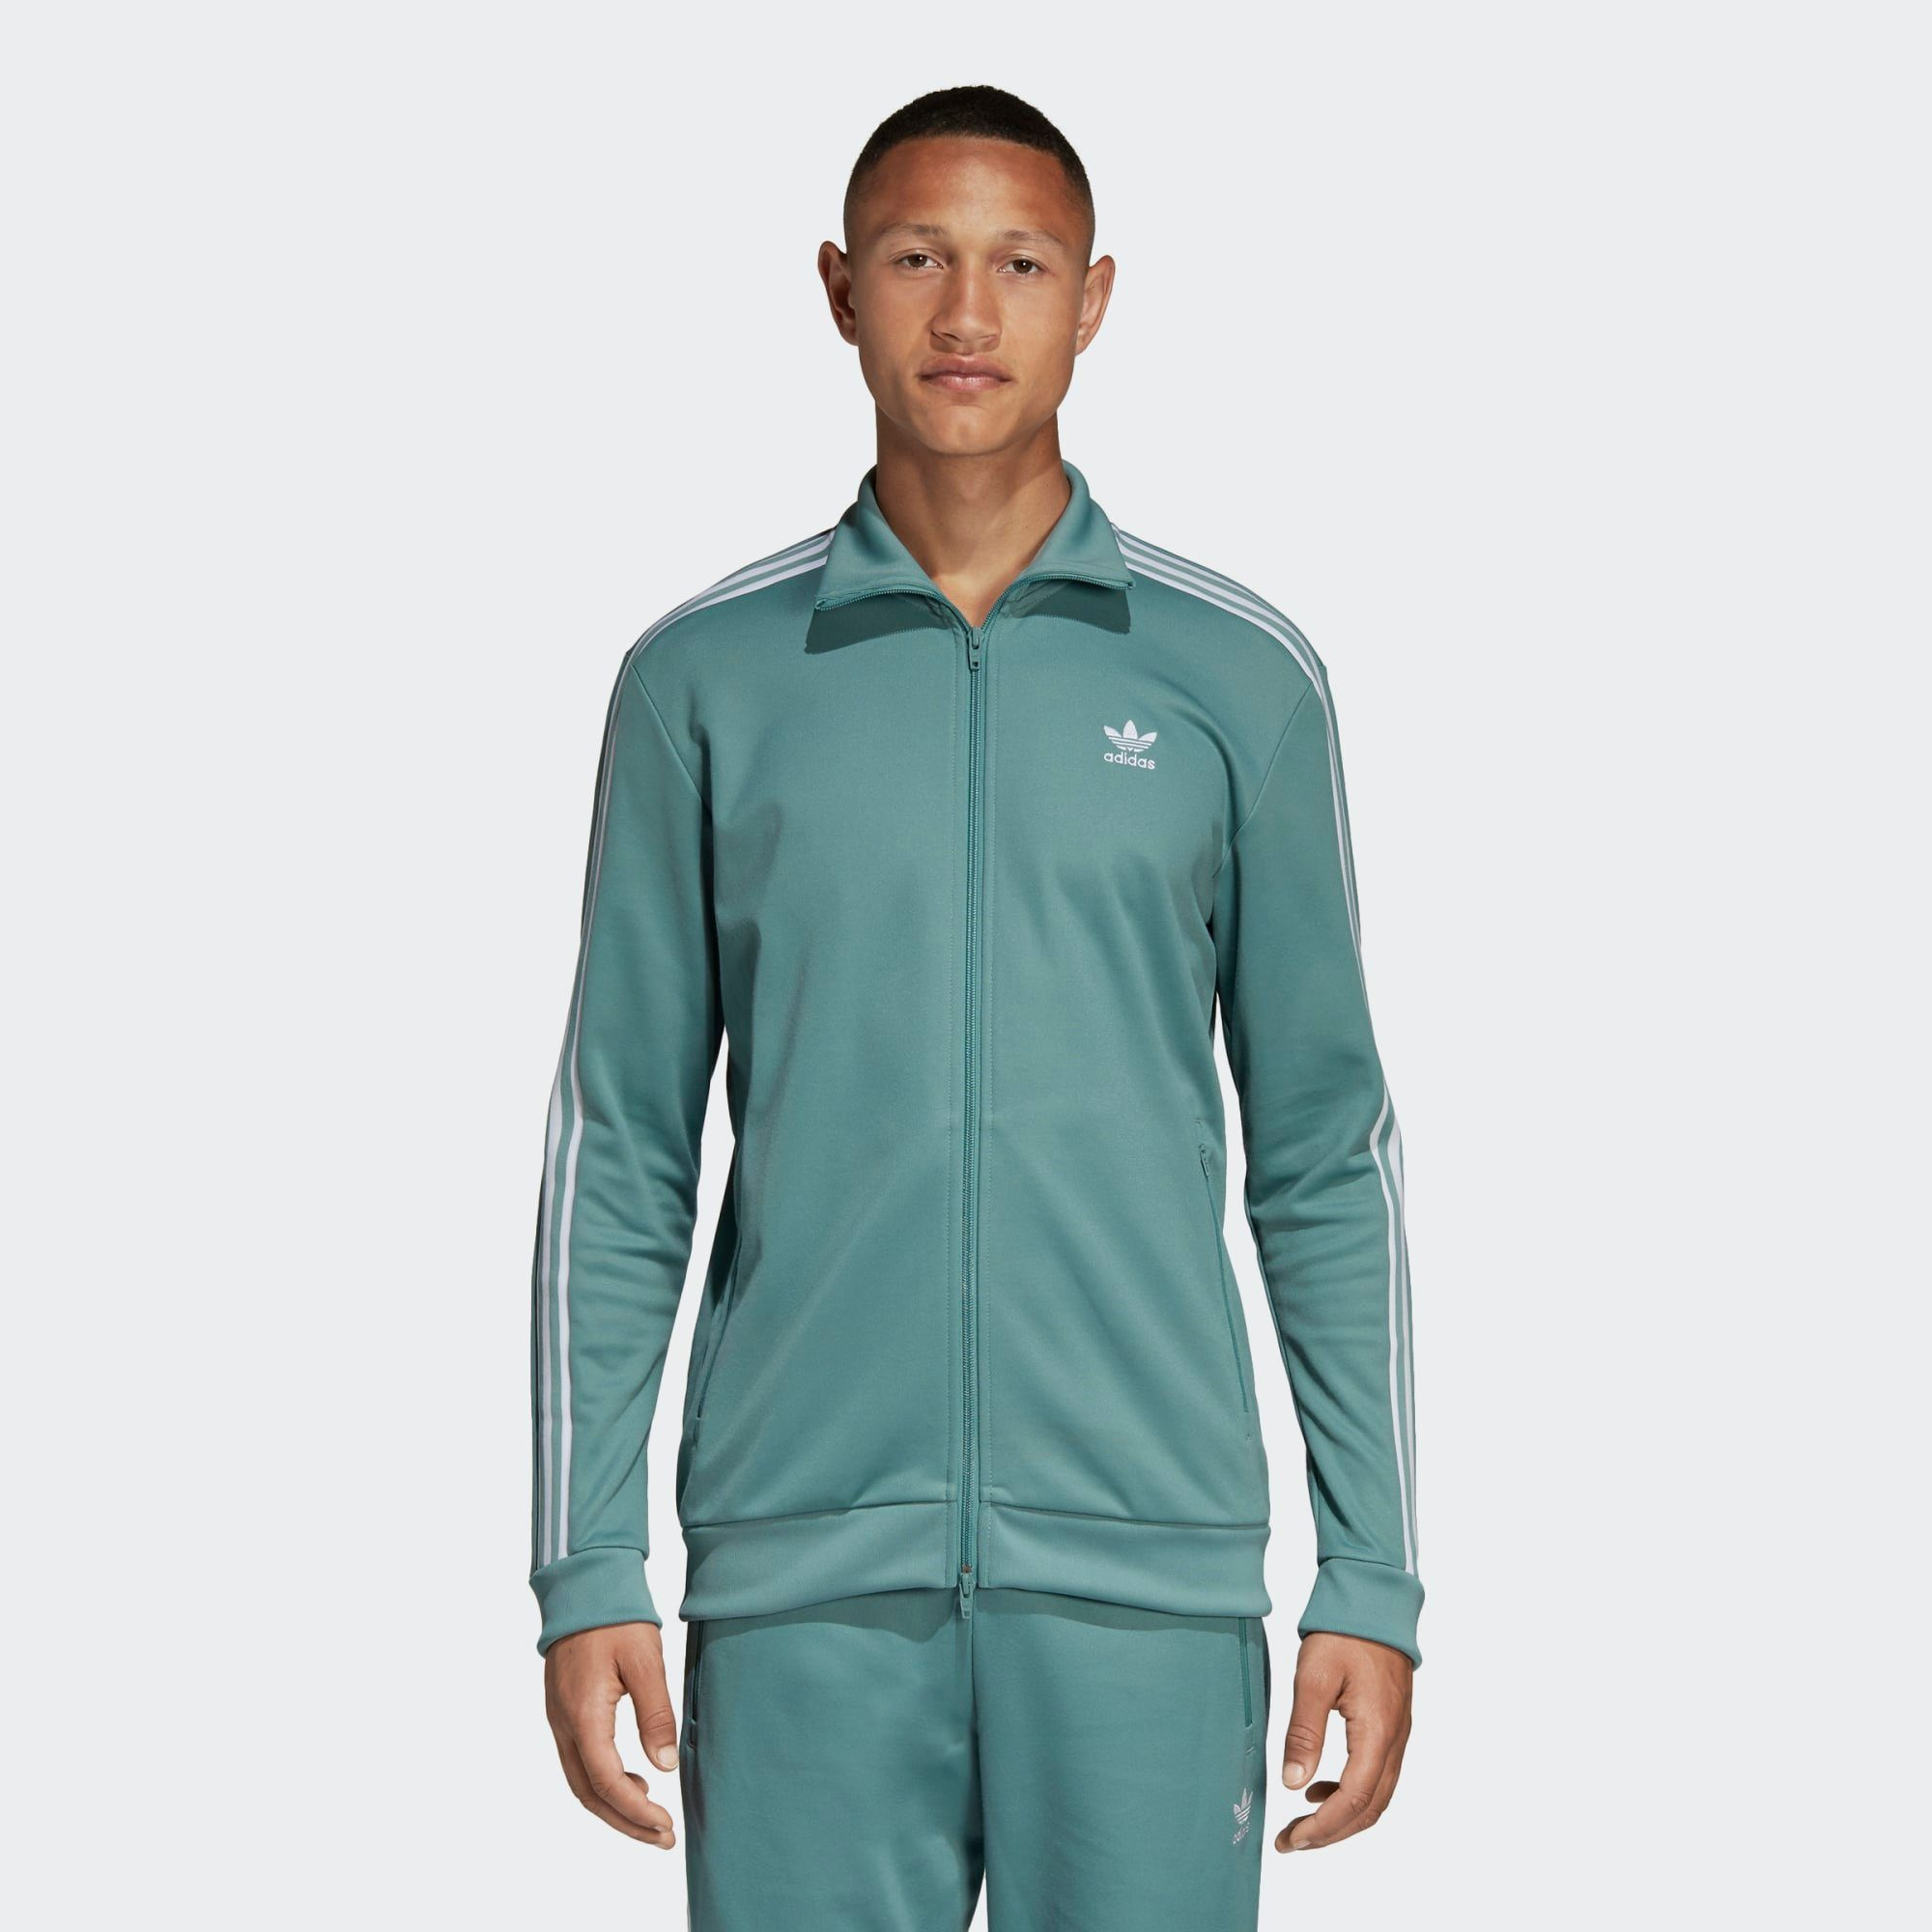 adidas Originals Sweatjacke »BB Originals Jacke« adicolor online kaufen | OTTO